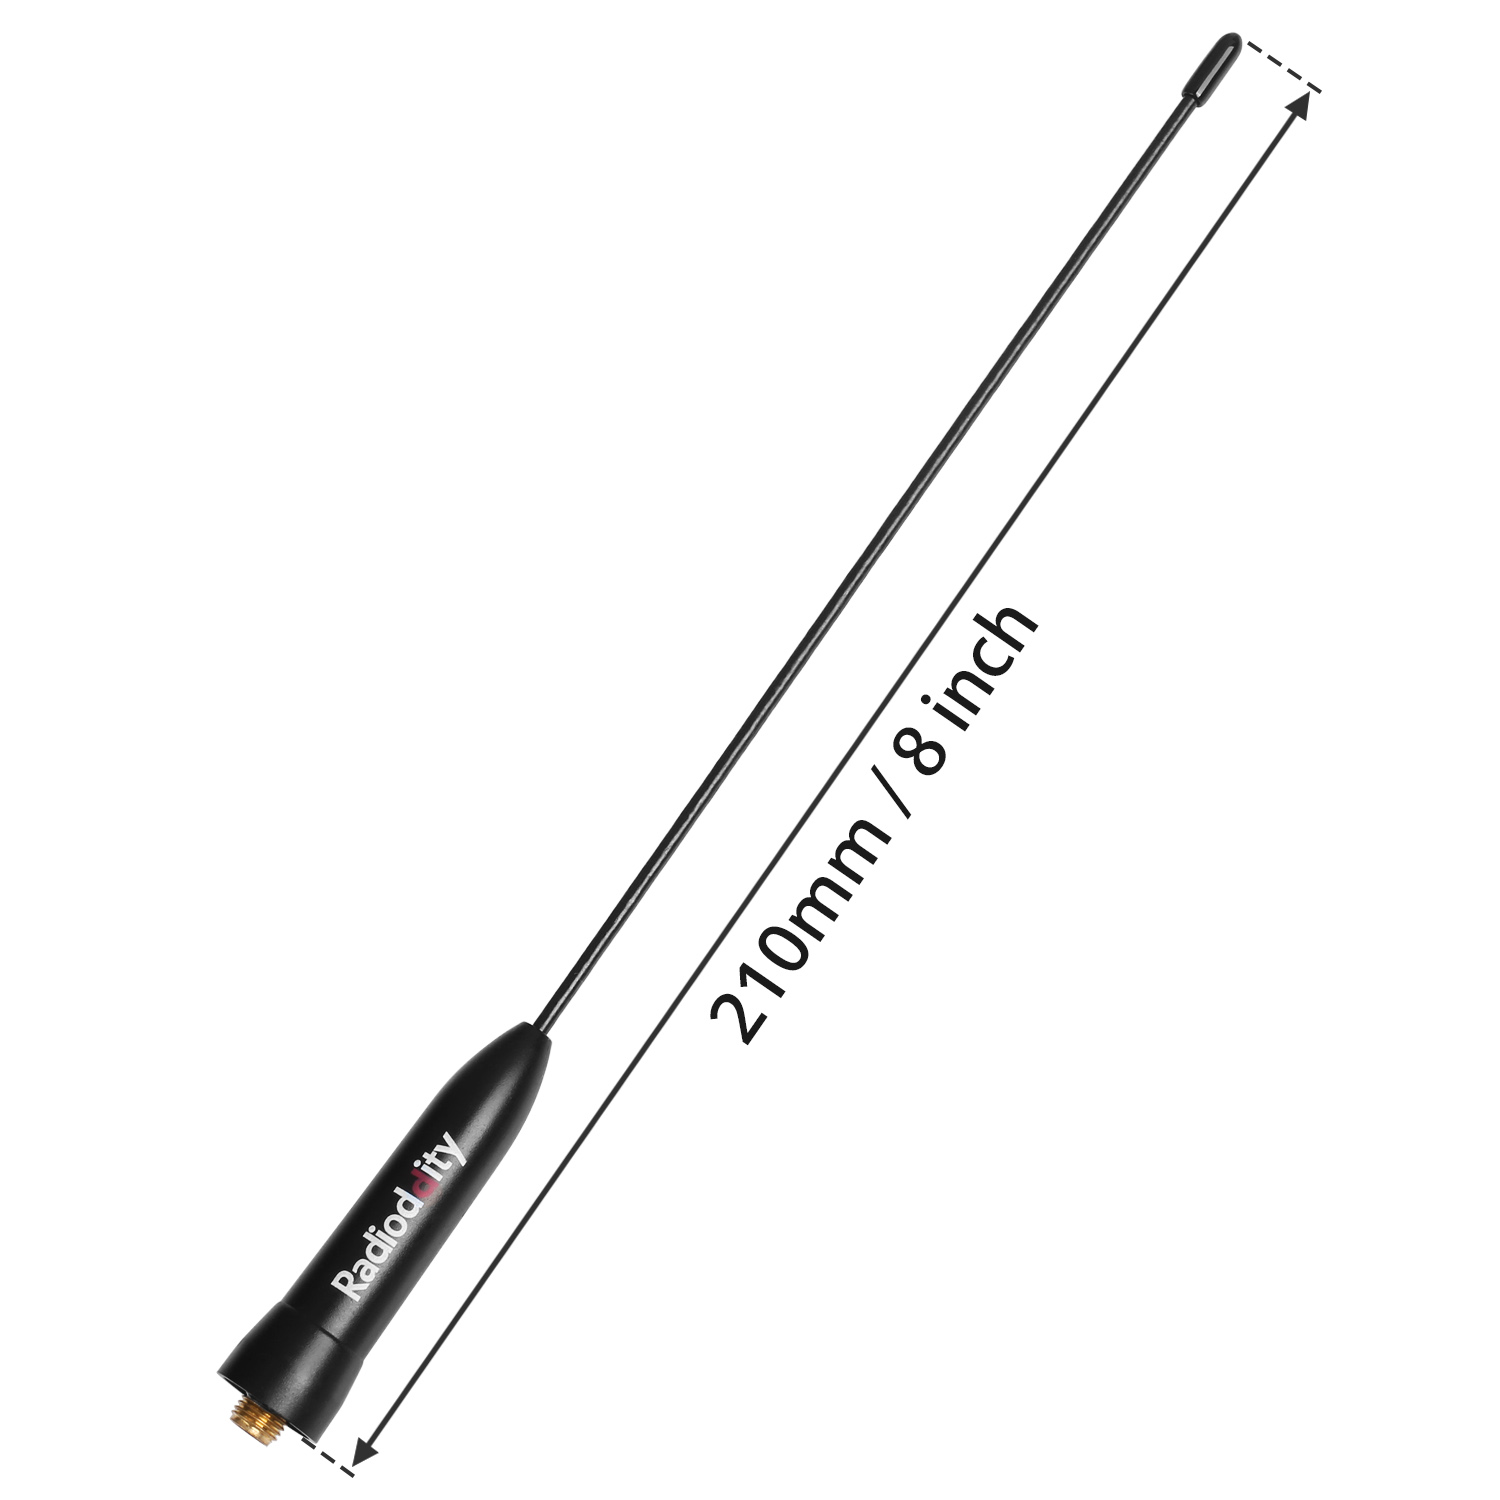 Radioddity Dual Band 21CM SMA Female Booster High Gain Antenna For Baofeng GT-3 Mark II GT-3TP UV-5R Two-way Radio Transceiver